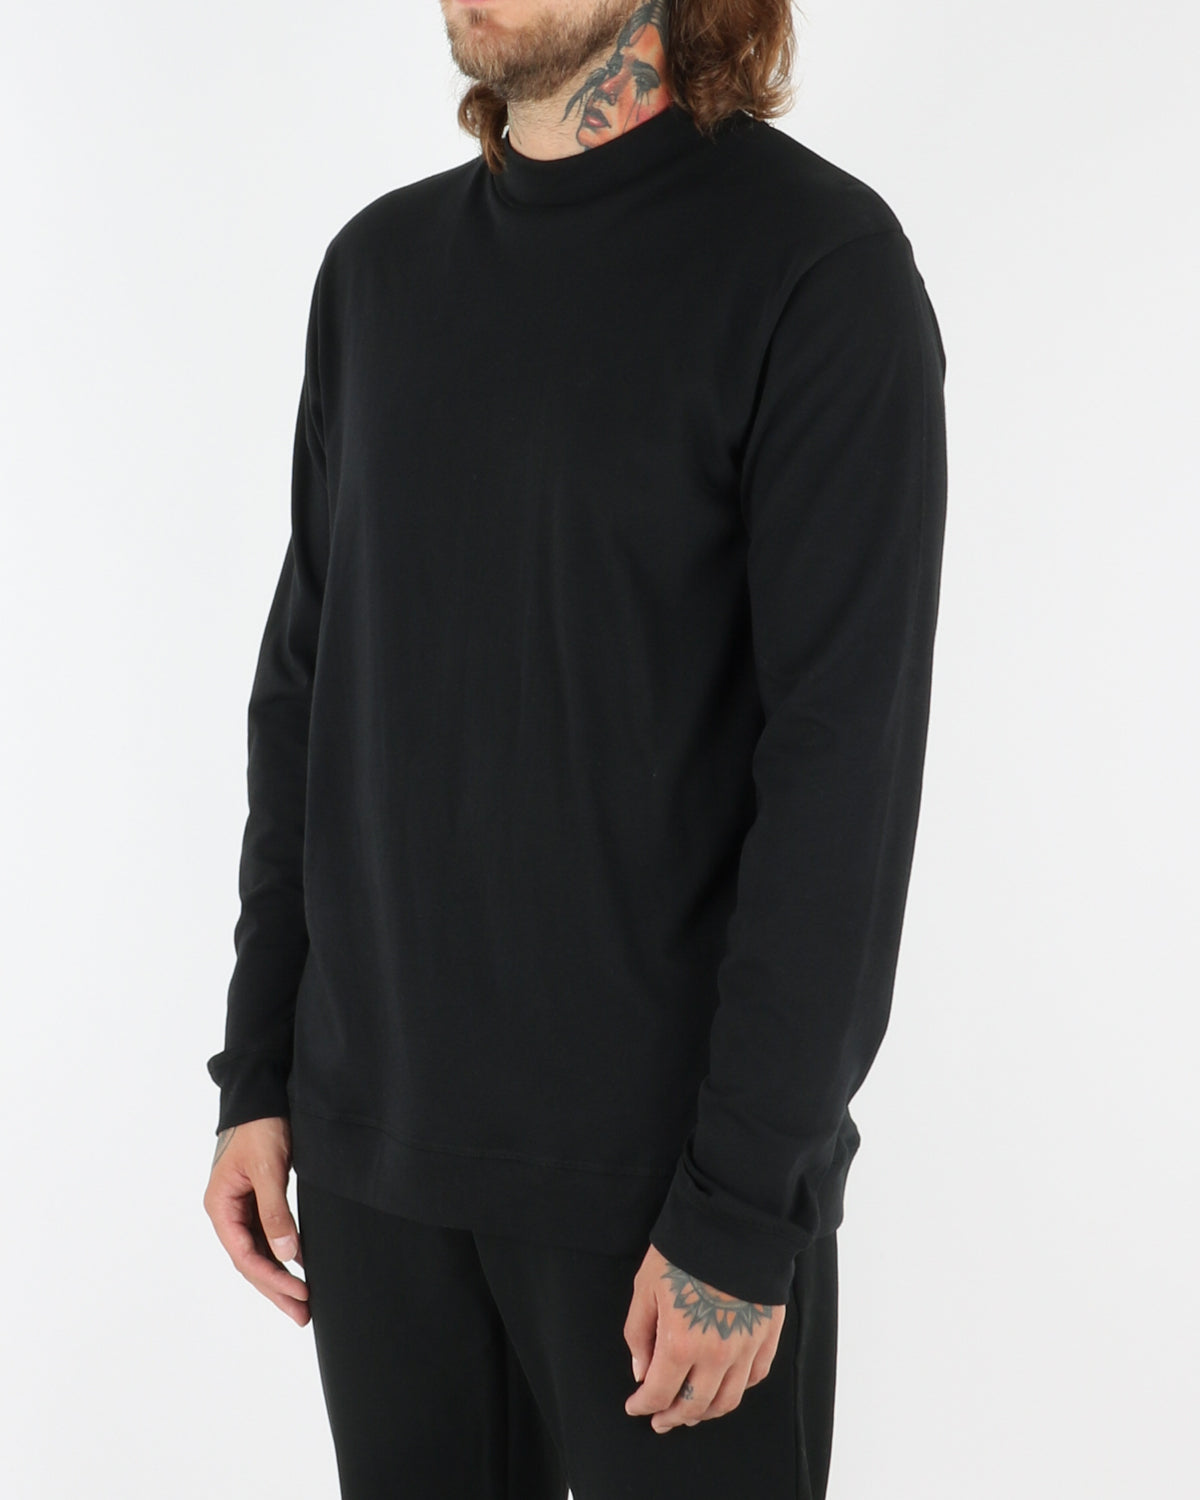 libertine libertine_murray_longsleeve_black_view_2_2